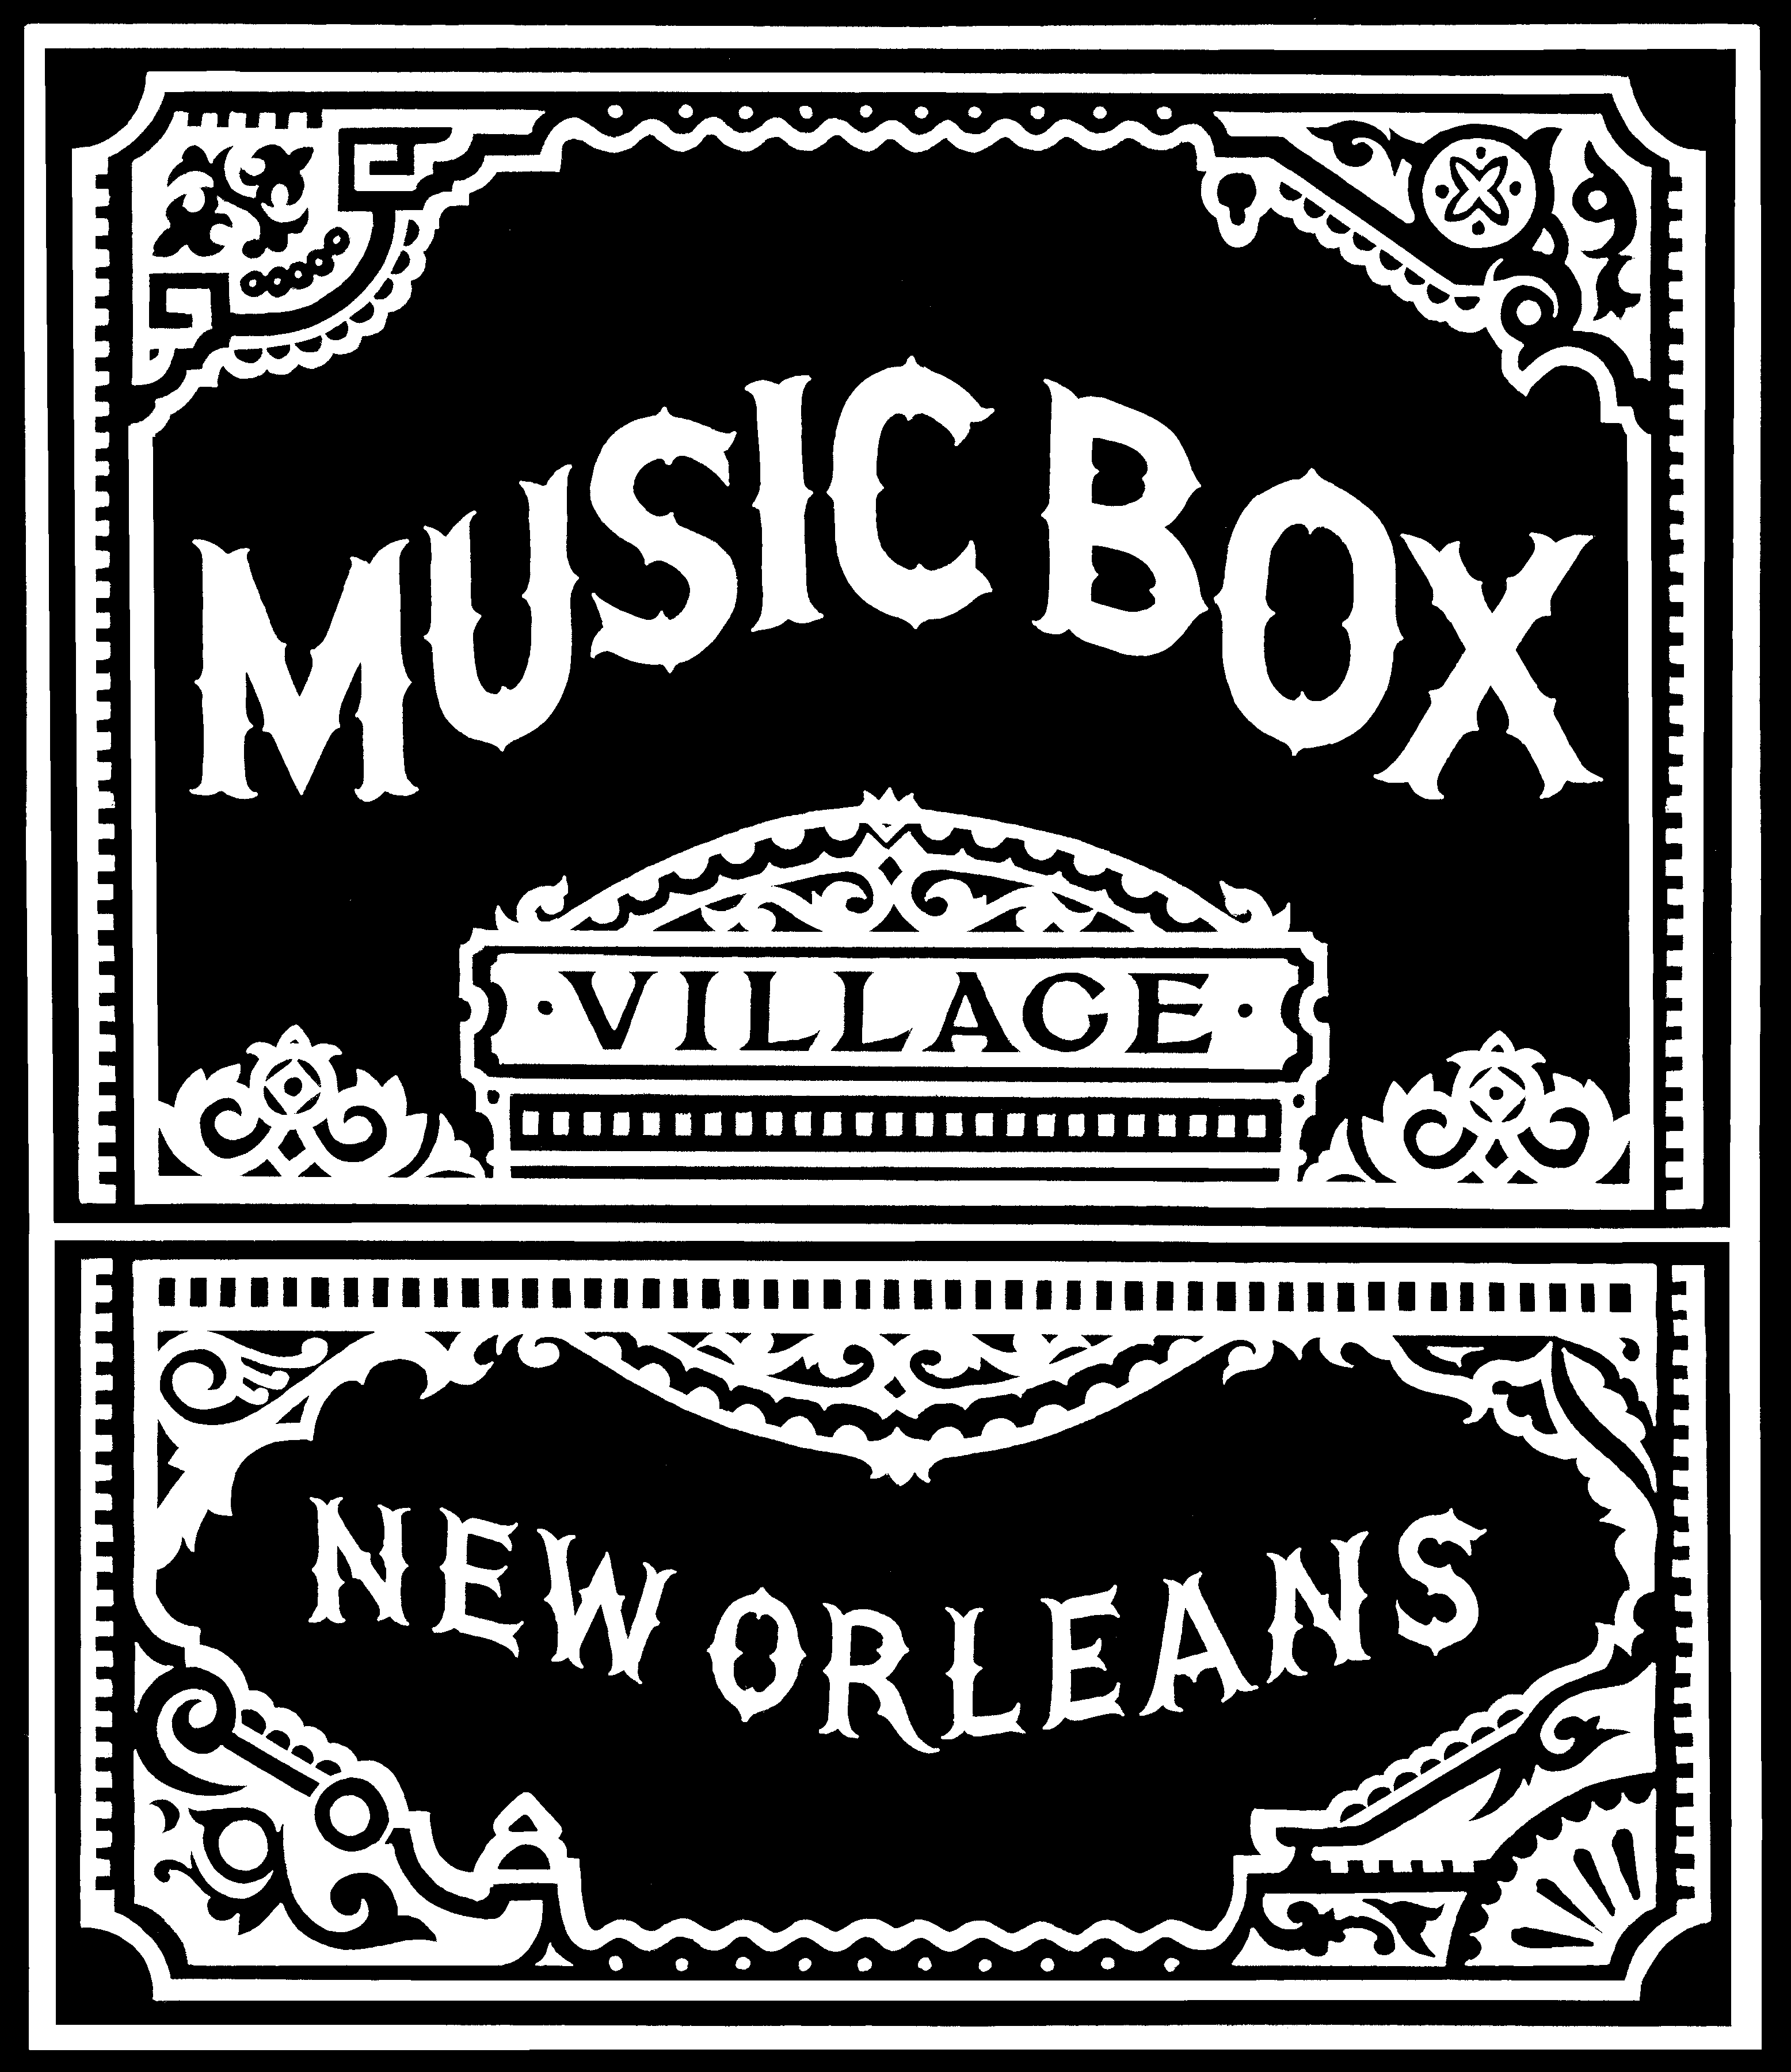 Music Box Village